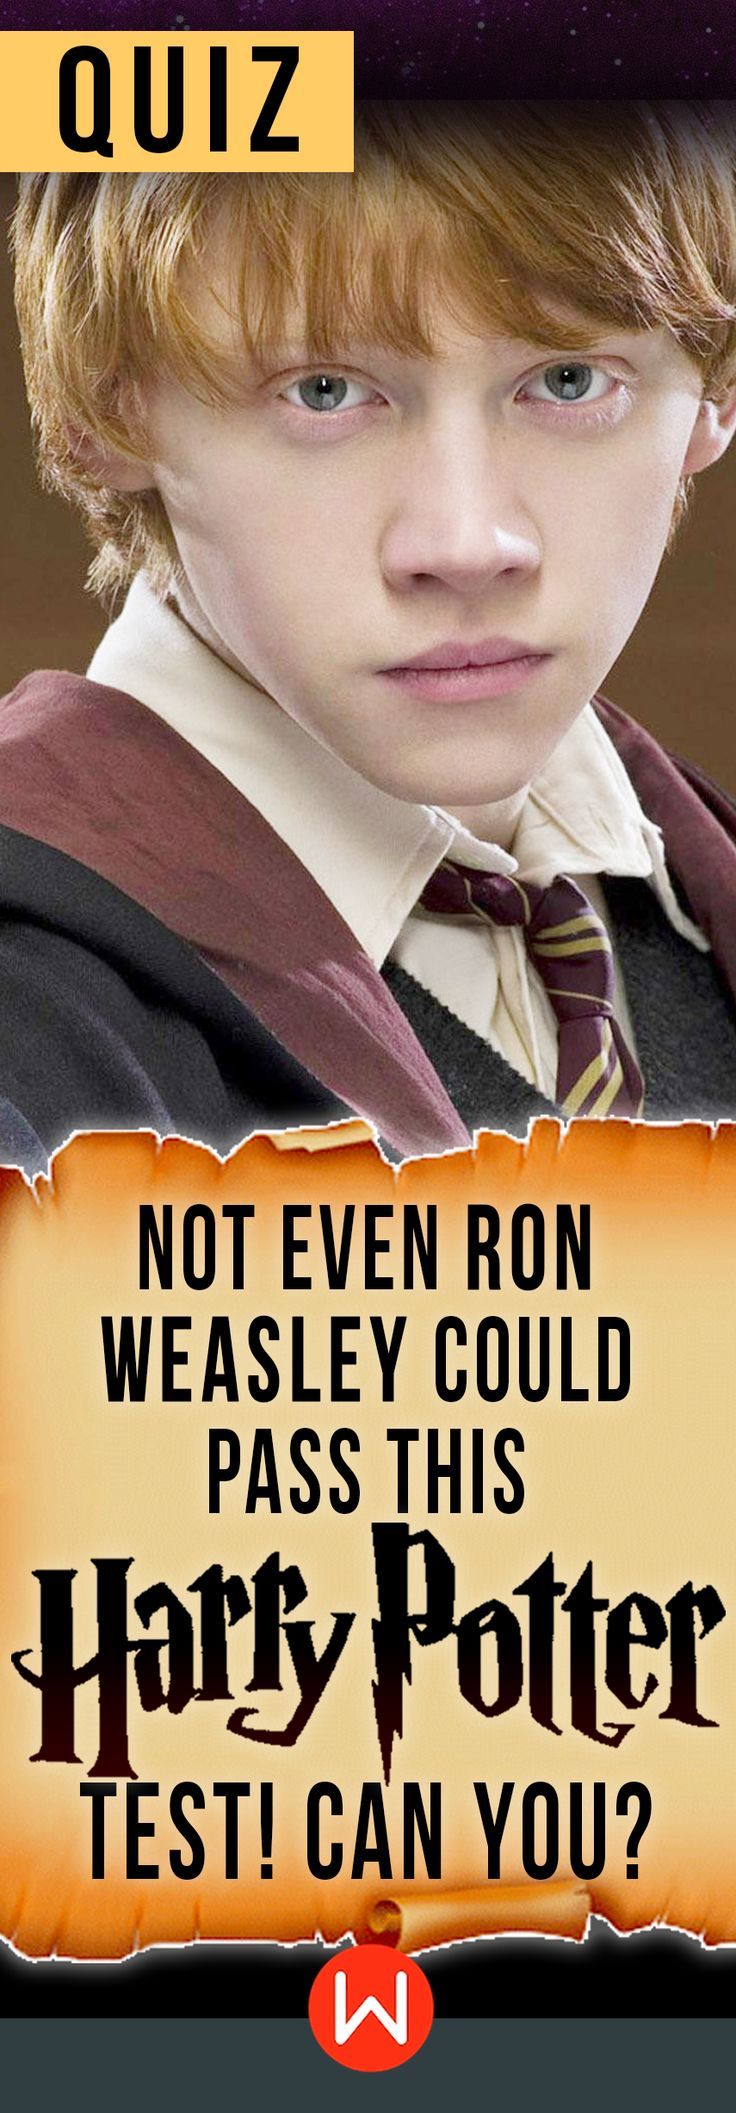 Are you smarter than Ron Weasley? HP trivia test. Are you a certified Potterhead? Do you think your knowledge about Harry Potter is totally above average? Let's see if you know more about Harry Potter than Ron Weasley. HP Challenge. Harry Potter trivia questions. Are you ready? JK Rowling.